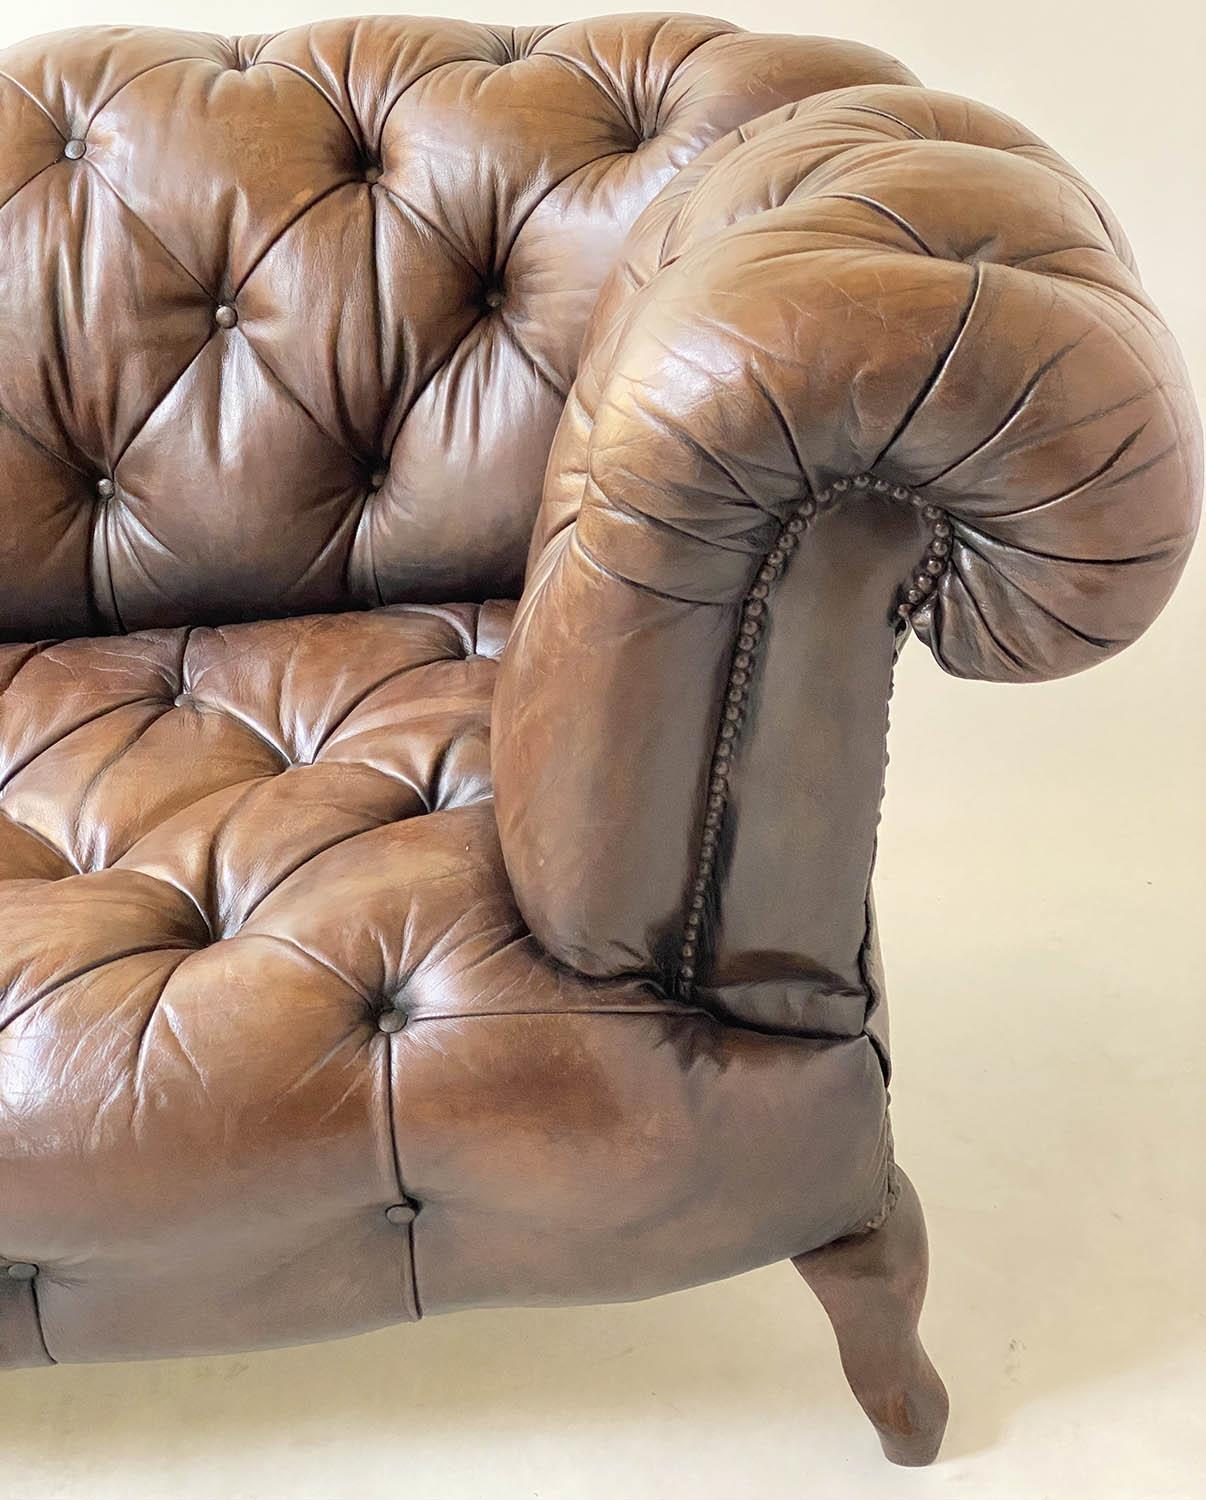 CHESTERFIELD SOFA, early 20th century Edwardian aged and faded brown leather with horsehair buttoned - Image 4 of 10